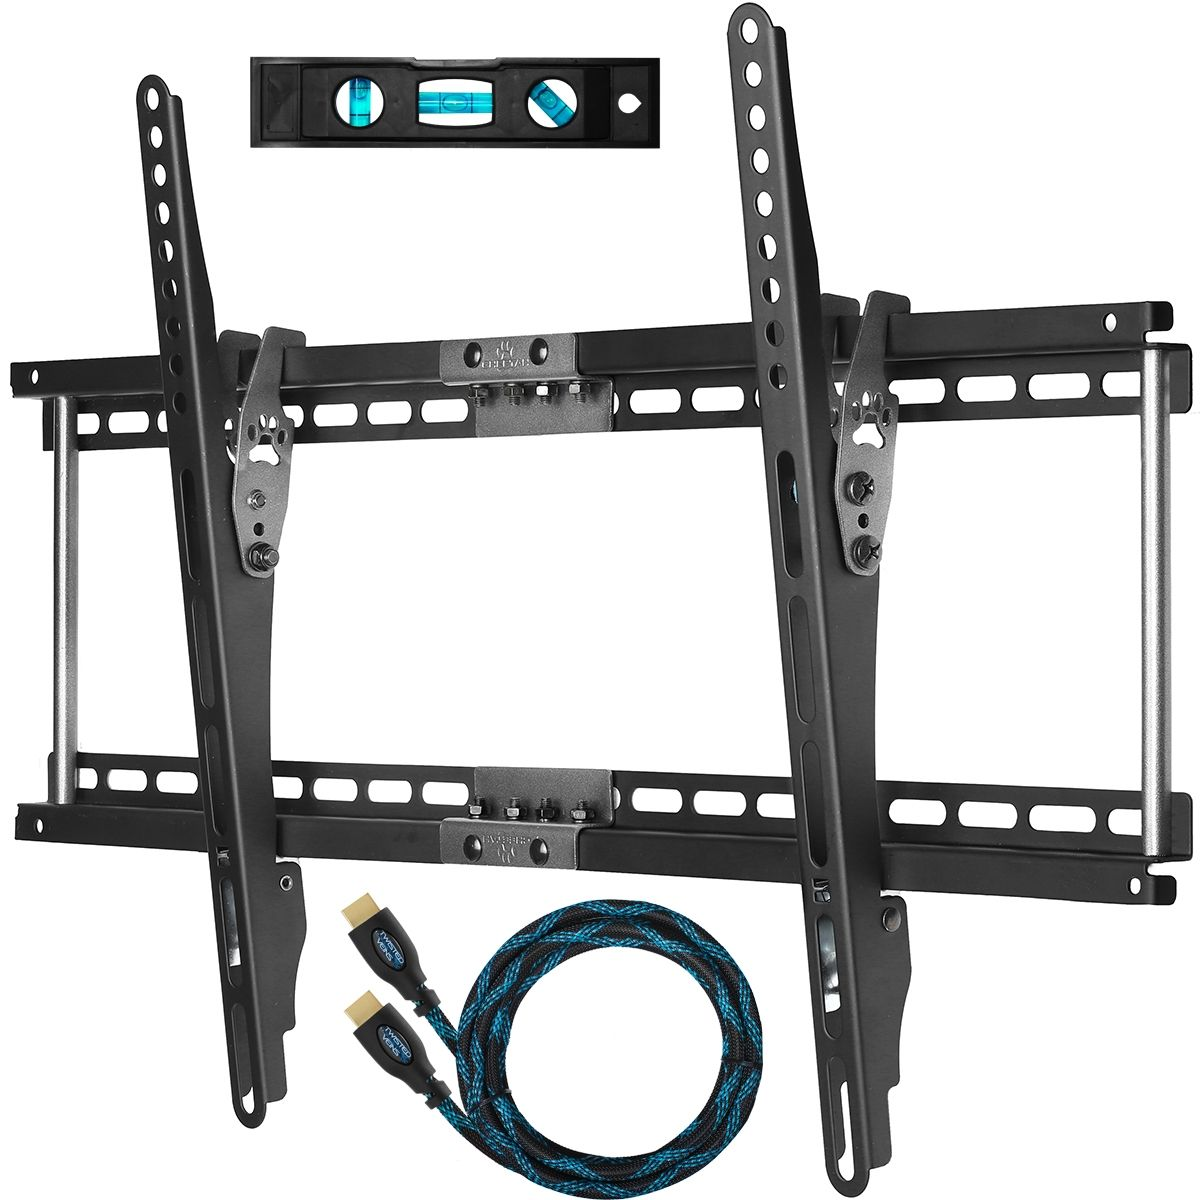 Types Of Tv Wall Mounting Brackets Wall Mounted Tv Tv Wall Mount Bracket Best Tv Wall Mount